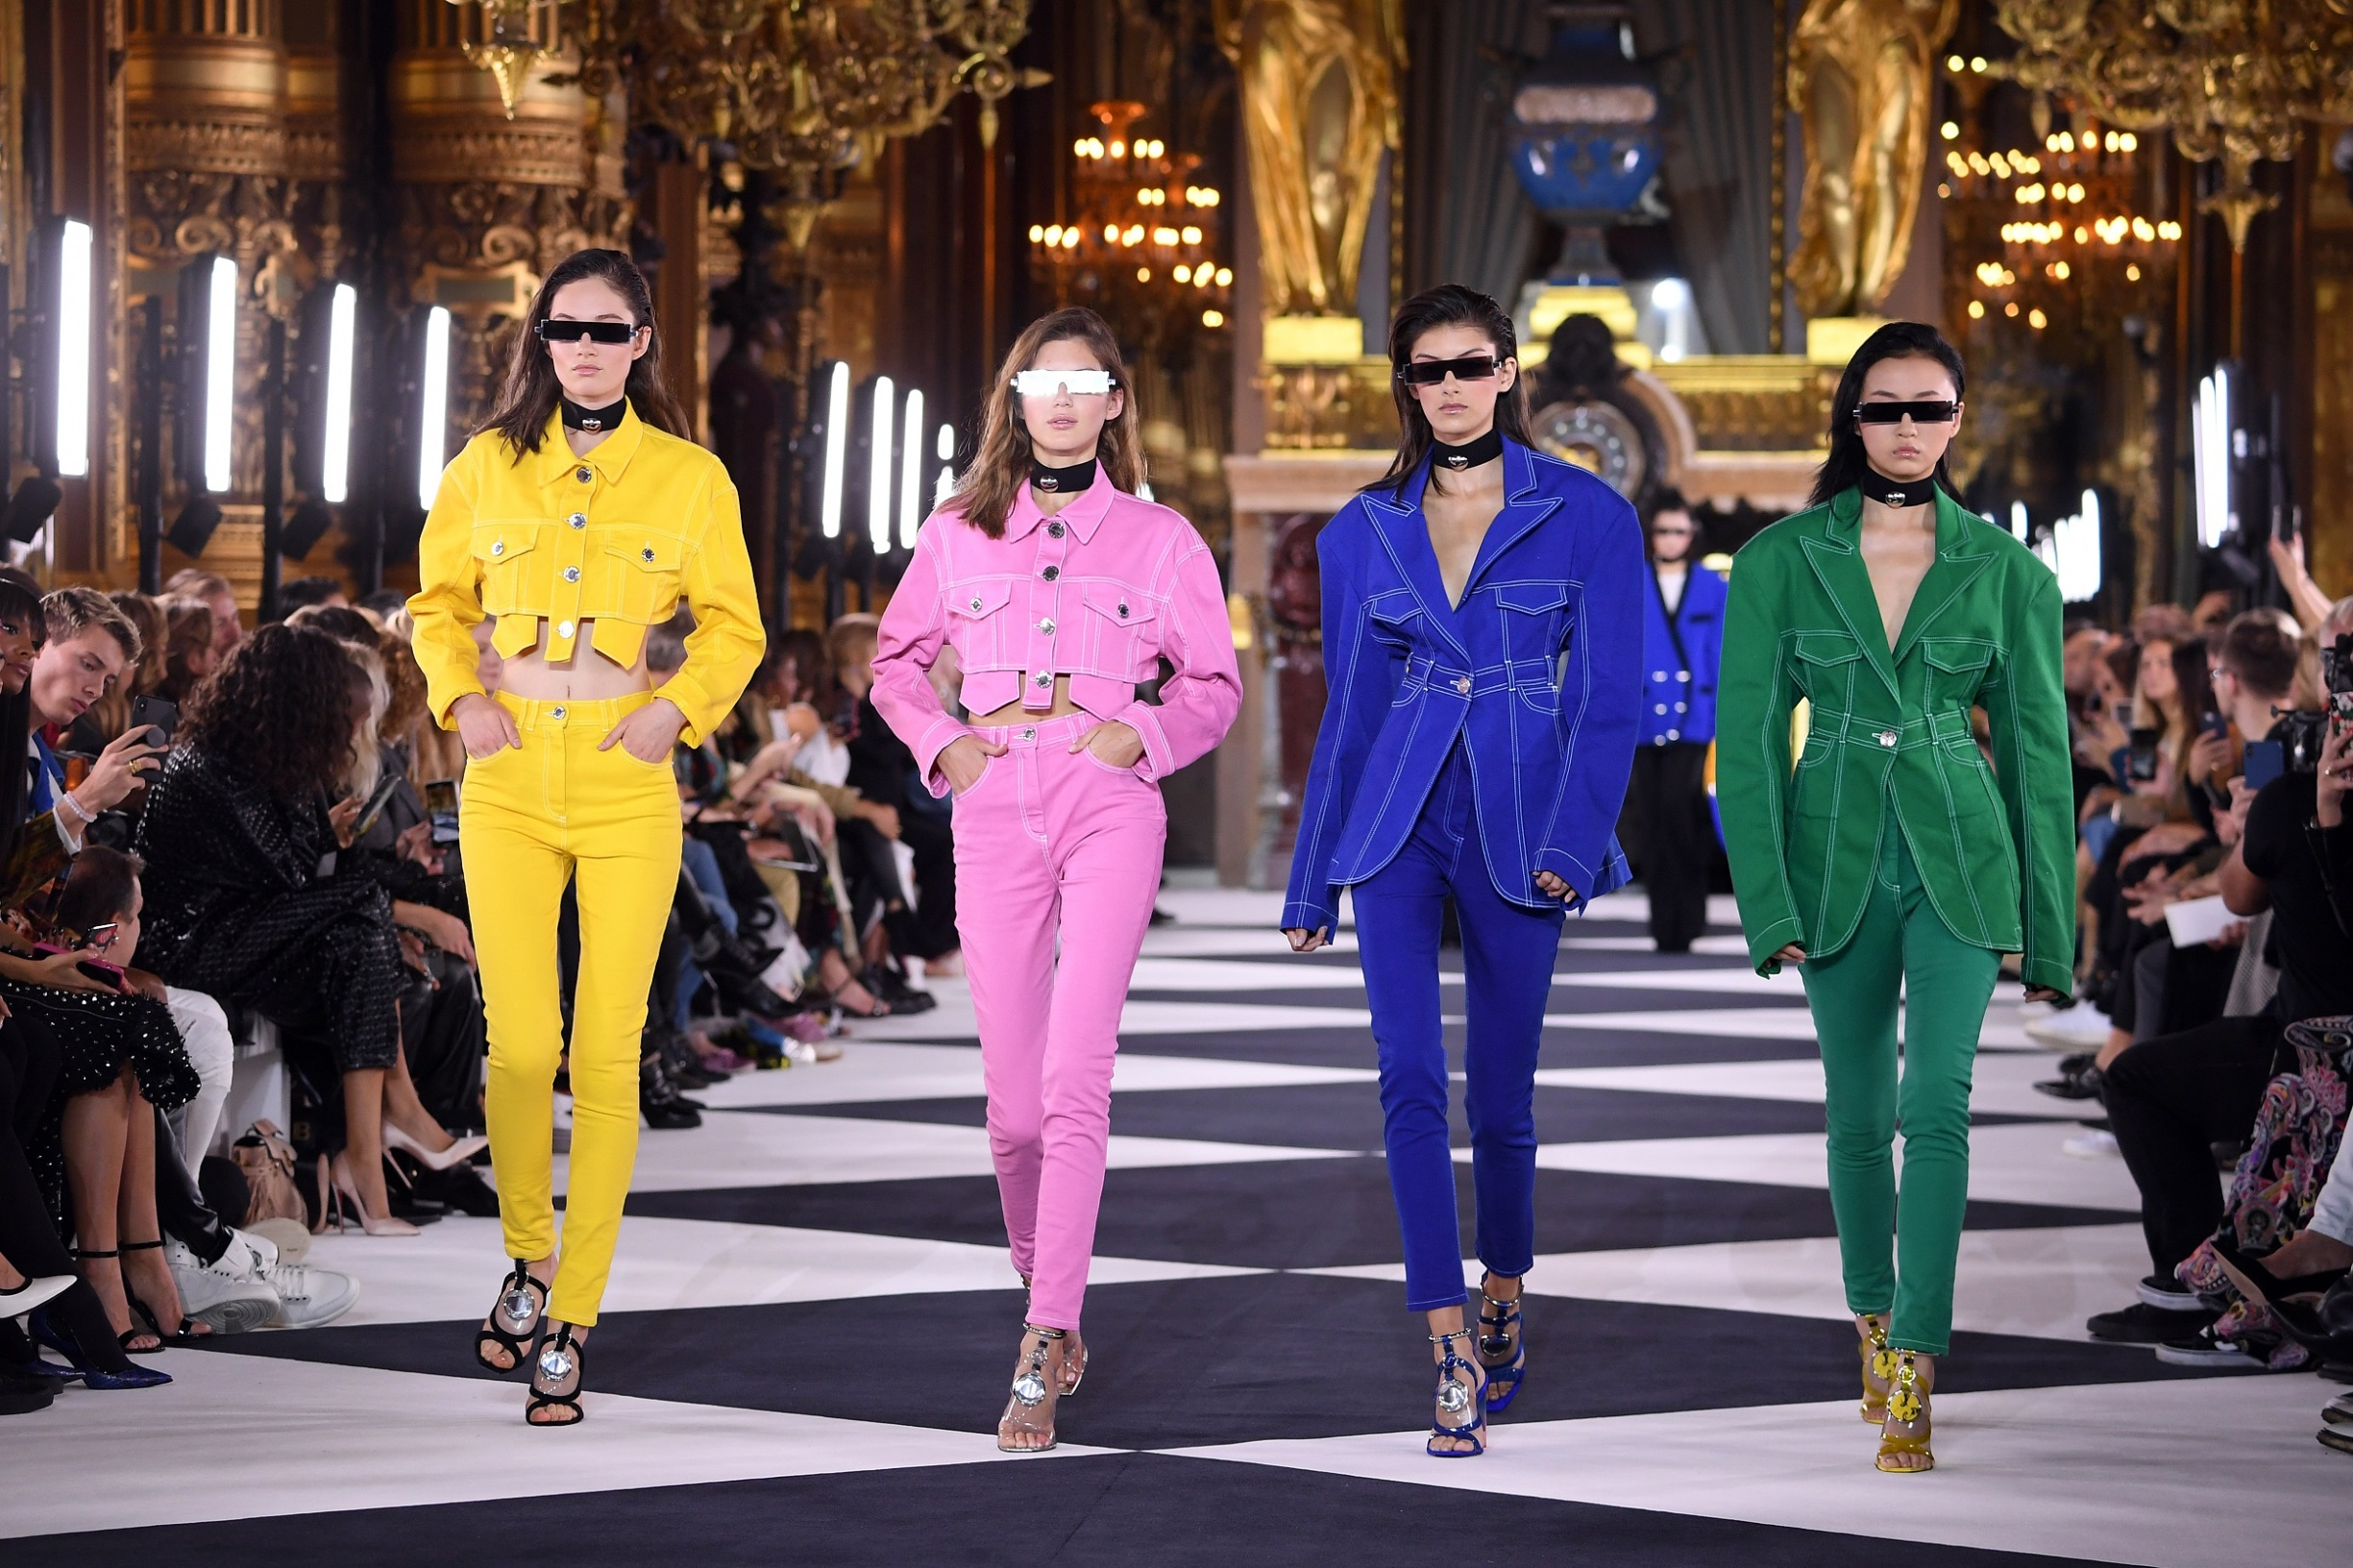 PARIS, FRANCE - SEPTEMBER 27: Models walk the runway during the Balmain Womenswear Spring/Summer 2020 show as part of Paris Fashion Week on September 27, 2019 in Paris, France. (Photo by Pascal Le Segretain/Getty Images)